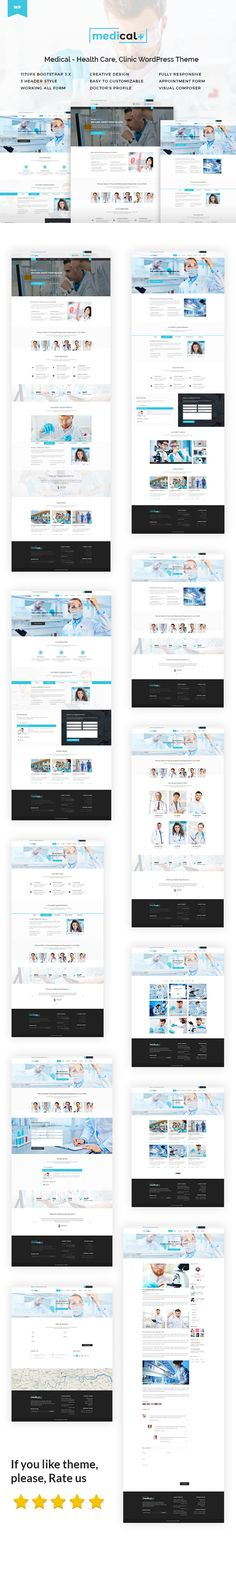 Medical Plus  Health Care Clinic WordPress Theme